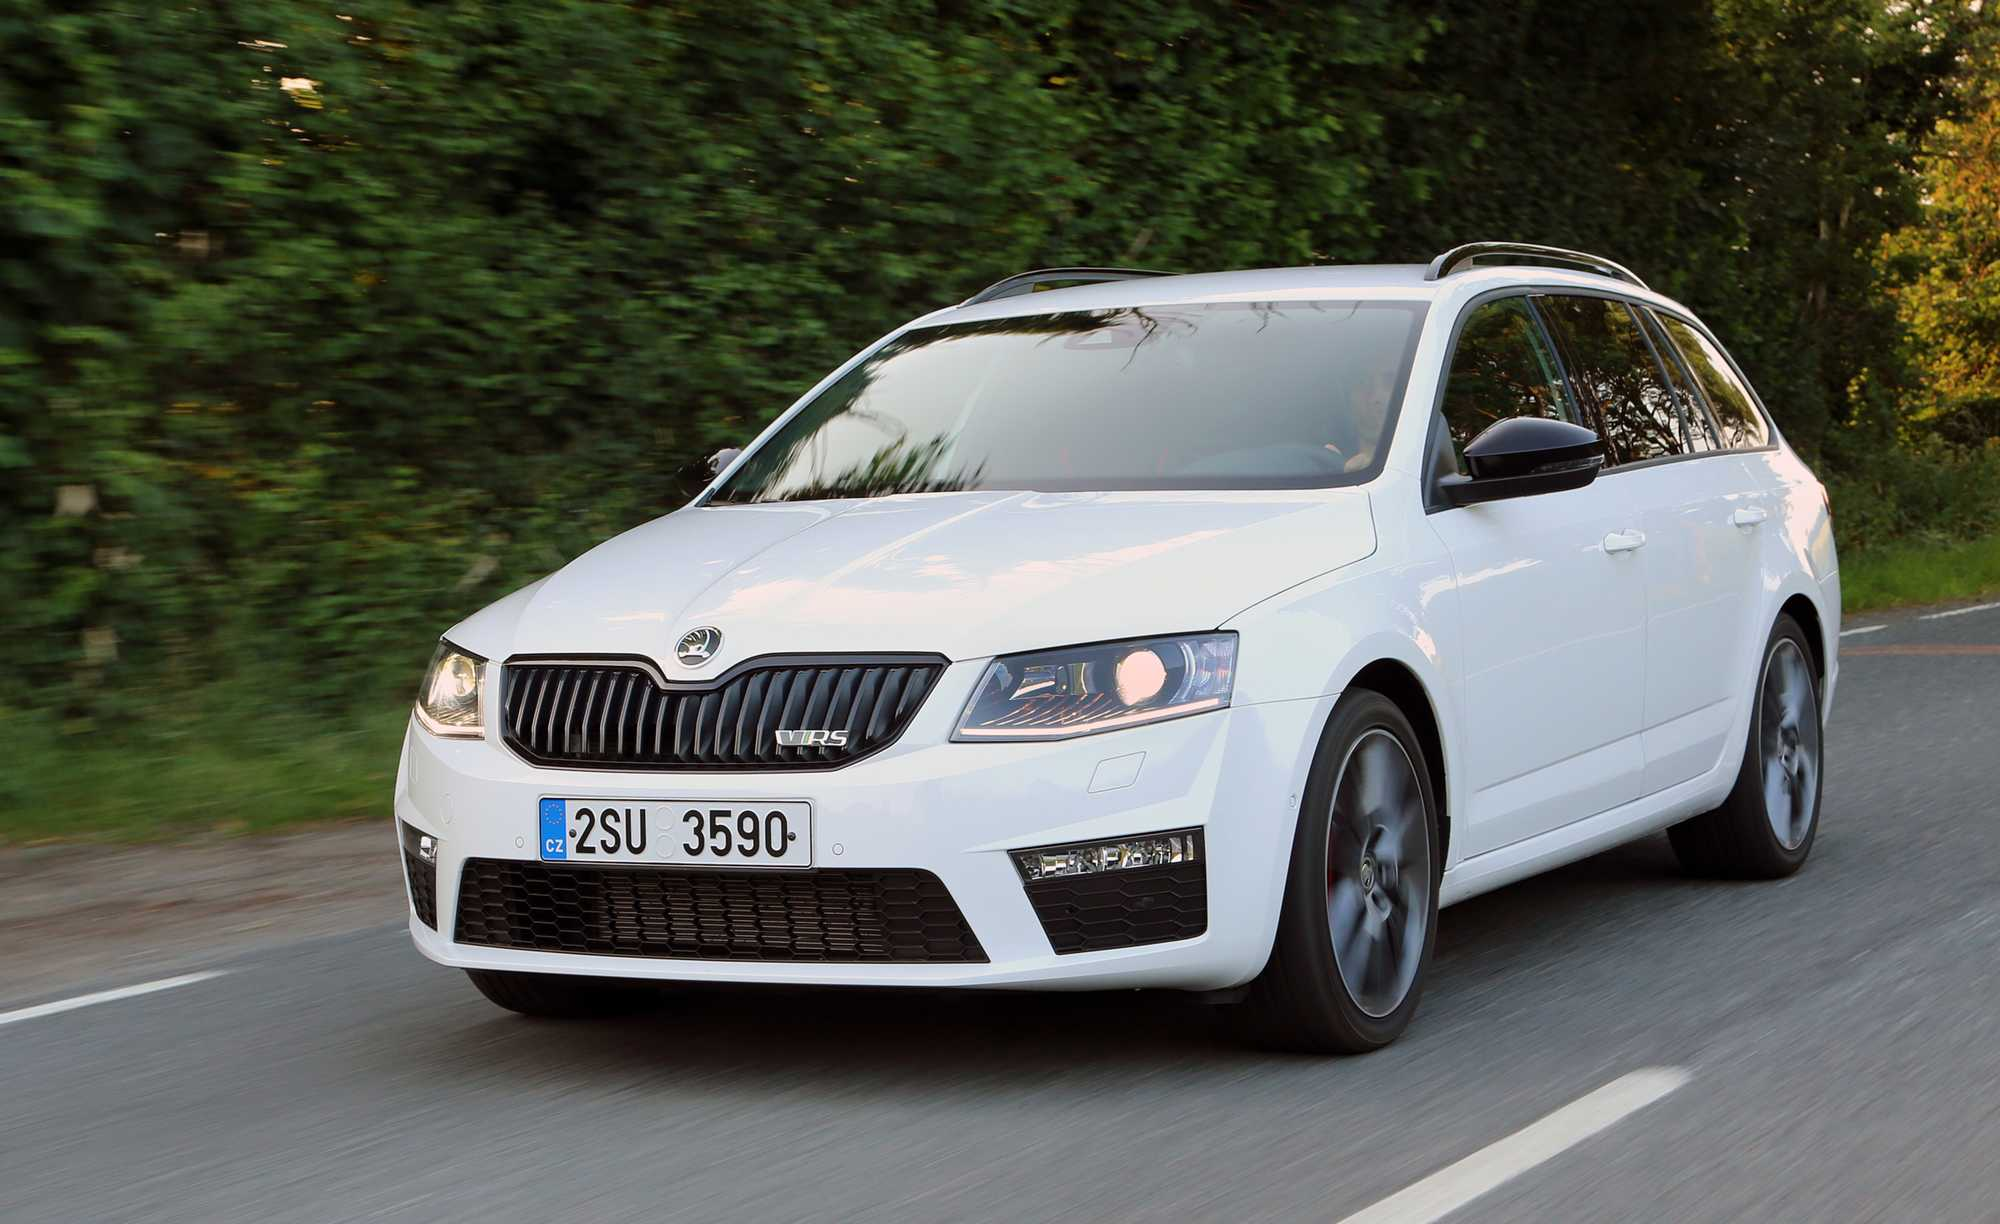 skoda octavia vrs estate review car keys. Black Bedroom Furniture Sets. Home Design Ideas